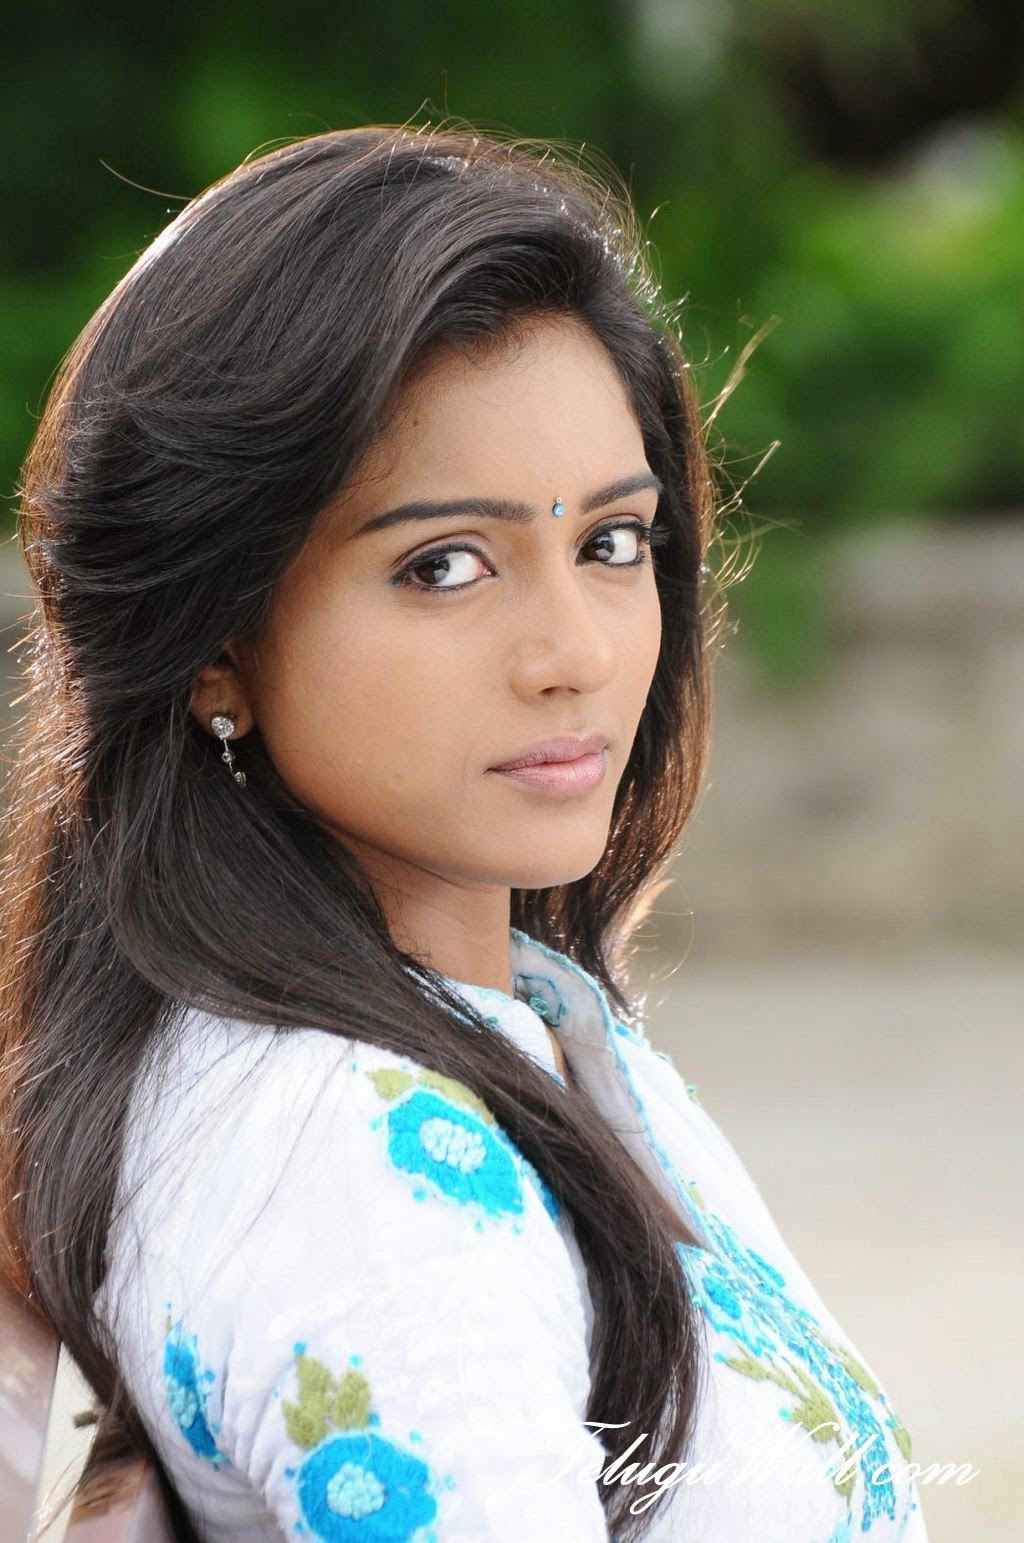 Tamil Actress Hd Wallpapers For Mobile 1024x1543 Download Hd Wallpaper Wallpapertip